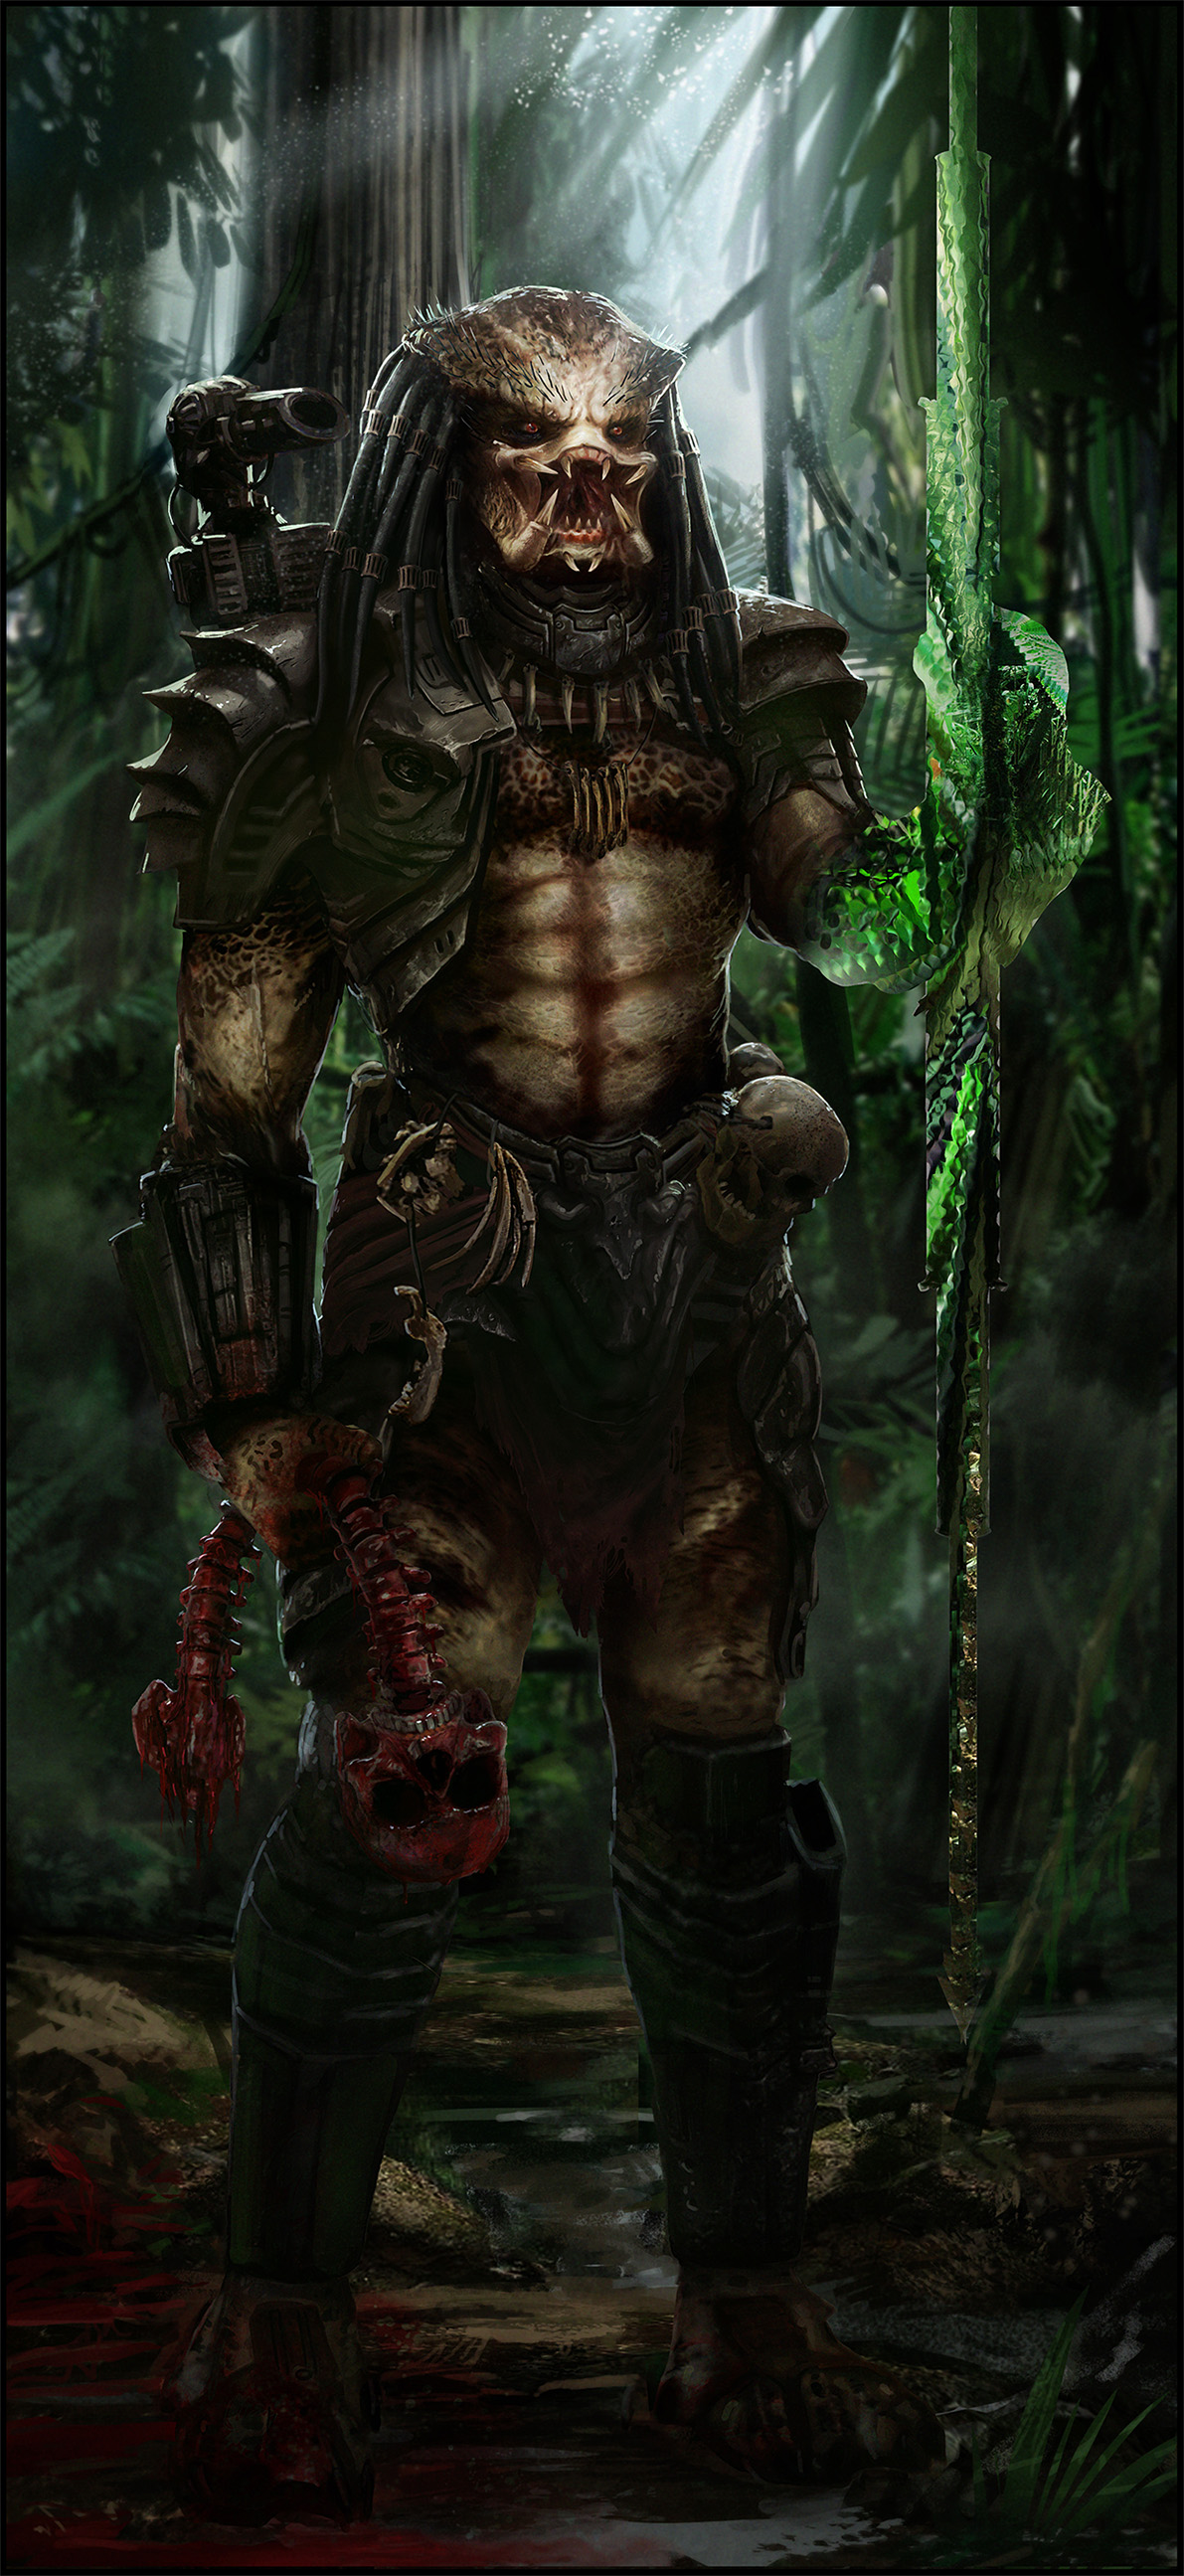 predator jungle - digital art